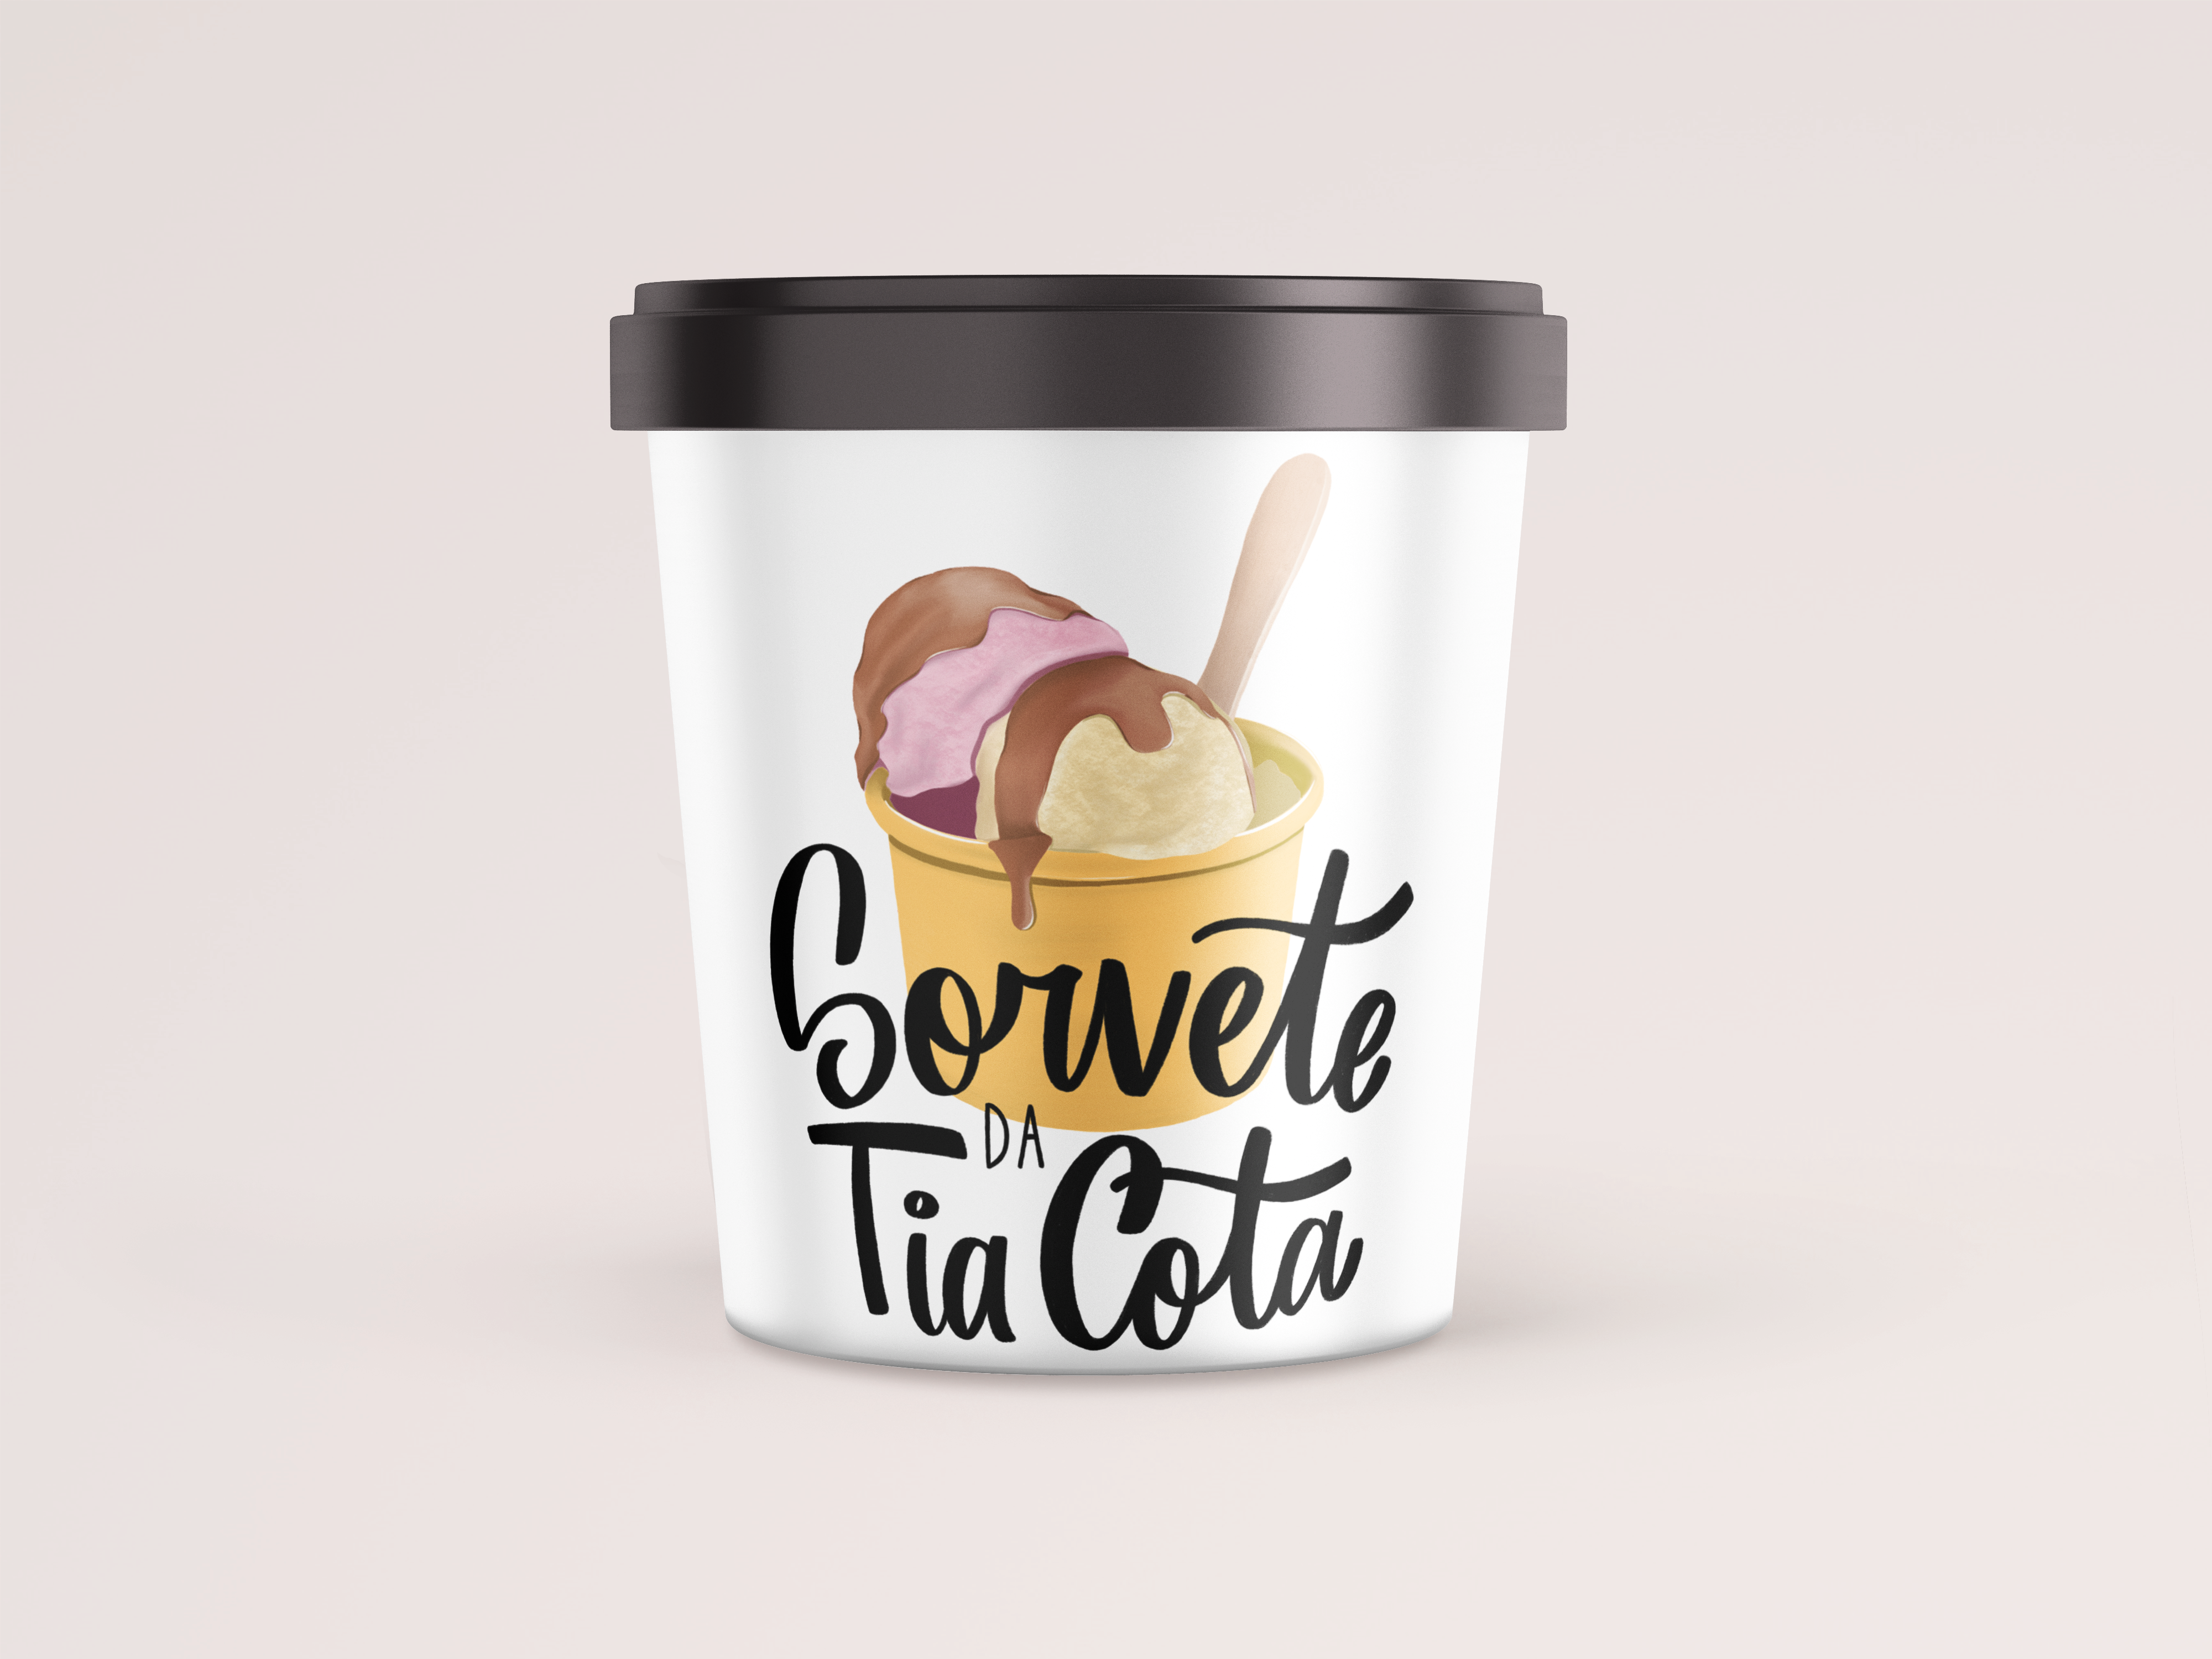 ice cream container with logo of an ice cream illustration